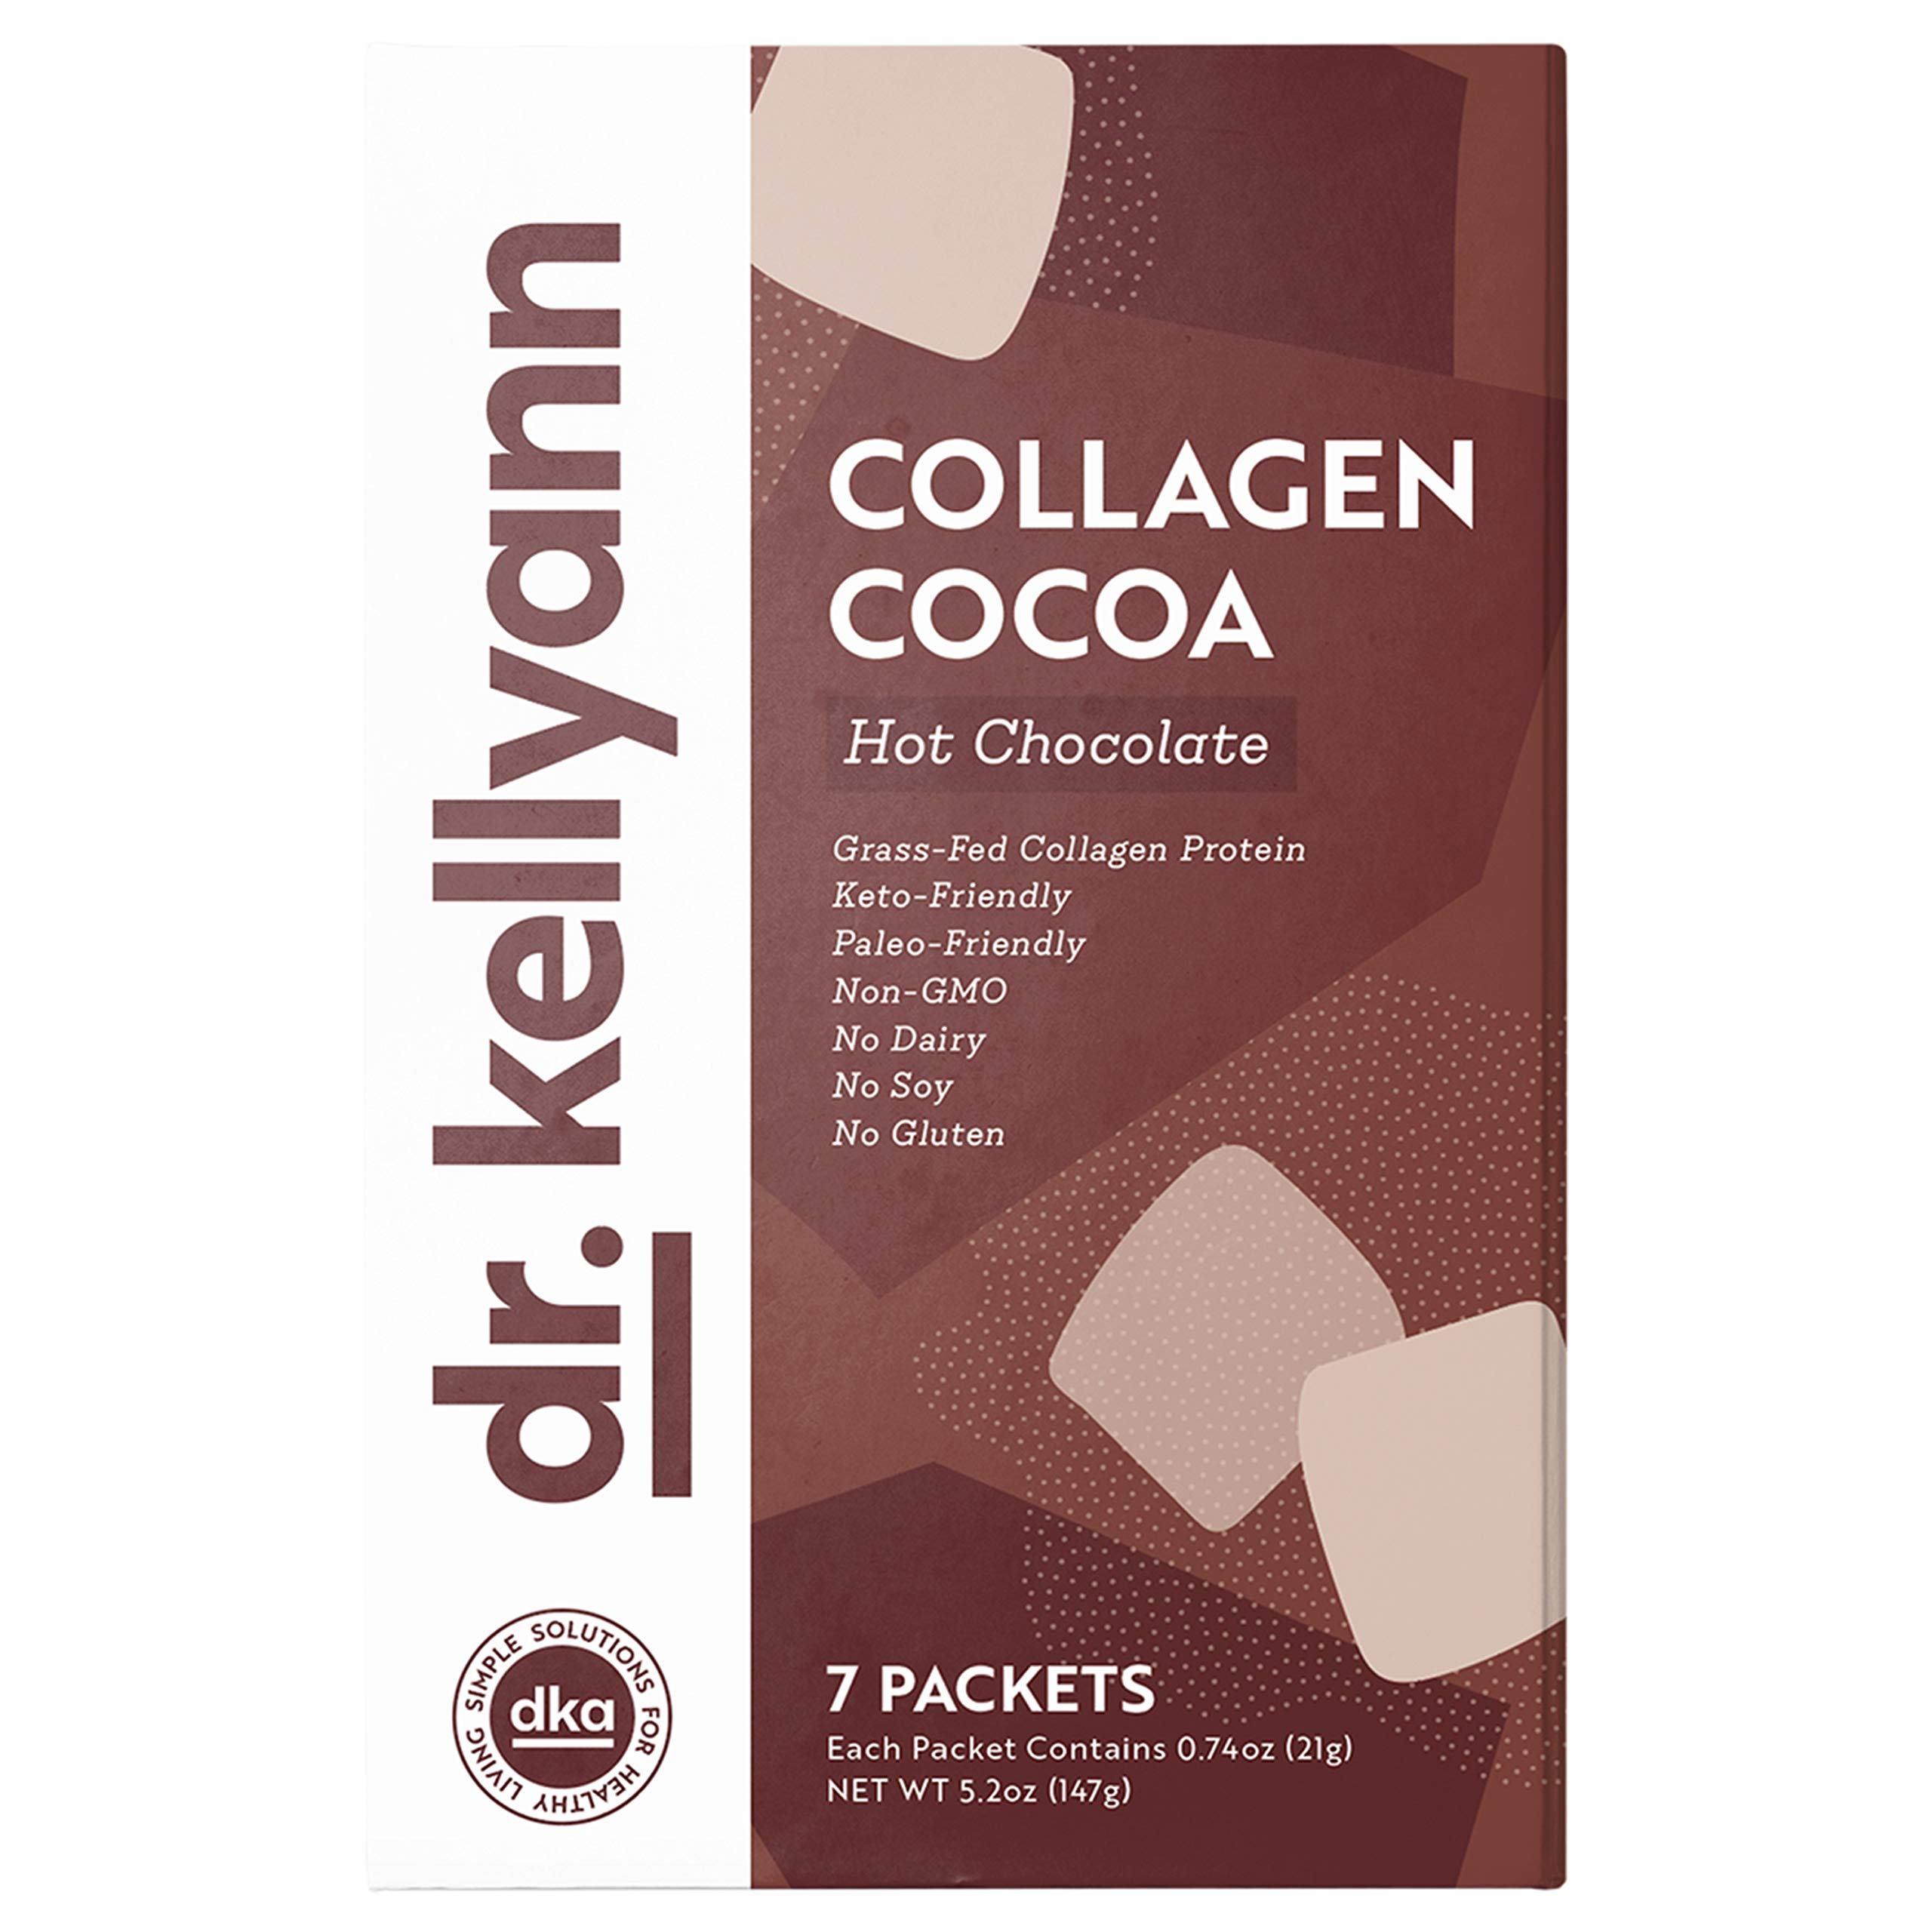 Keto Cocoa Hot Chocolate Packets to Go by Bone Broth Expert Dr. Kellyann - 100% Grass-Fed Collagen, Coconut Milk & Cocoa Powder - Perfect for Keto, Paleo & Weight Loss Diets - 0g Sugar (7 Servings) by Dr. Kellyann